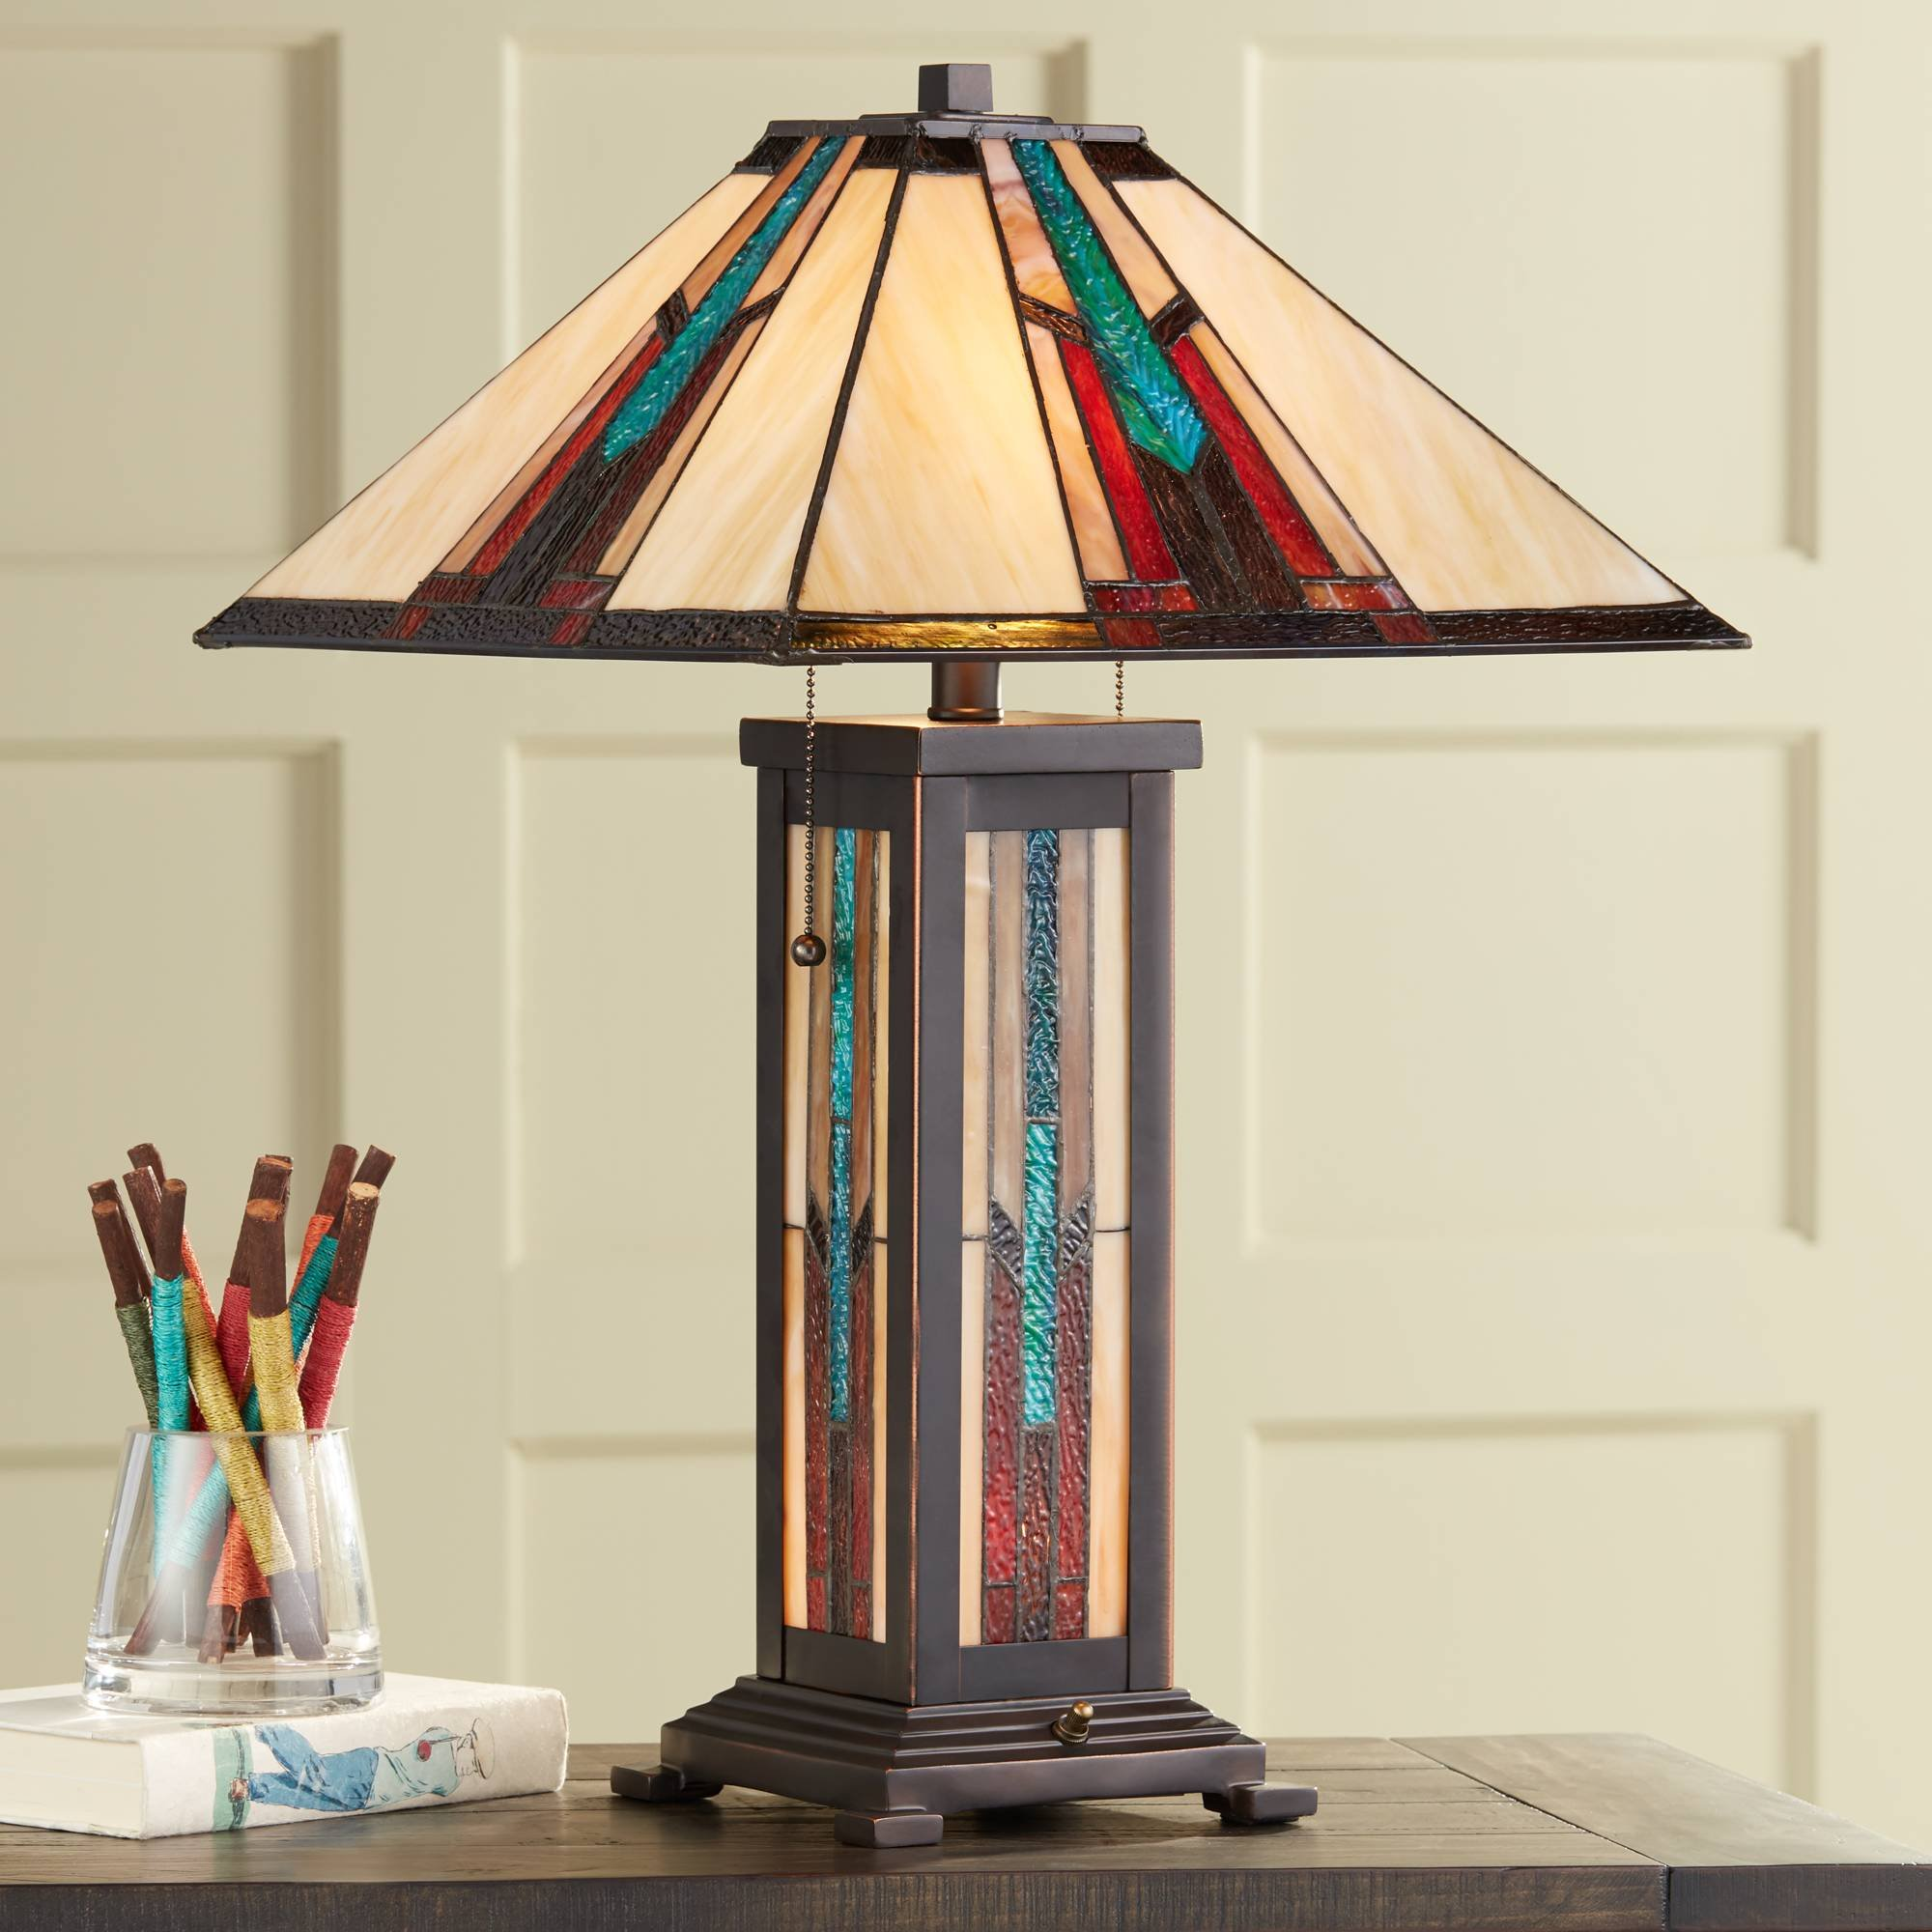 Ranier Mission Table Lamp with Nightlight Bronze Stained Glass for Living Room Family Bedroom Bedside Nightstand - Robert Louis Tiffany